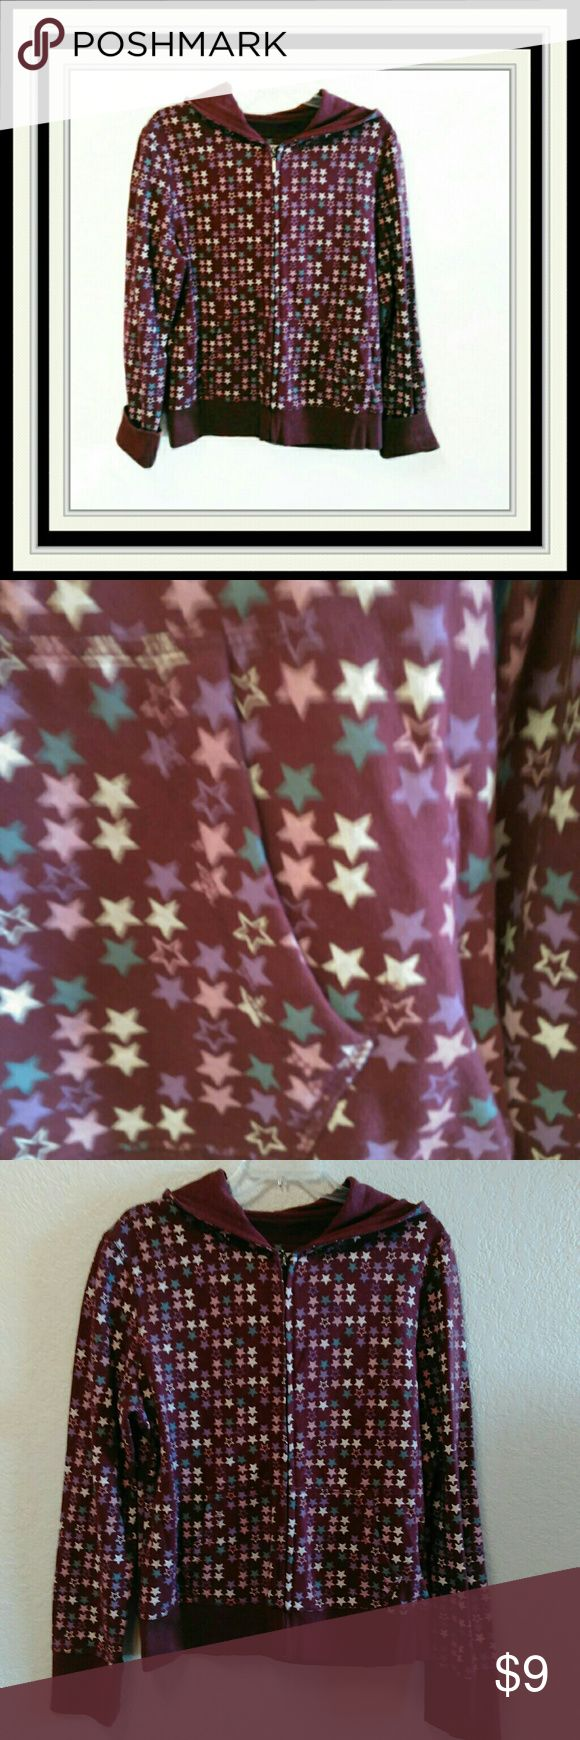 """Aeropostale Zip Up Hoodie L-3 Size XL.  Characterized by Multi Colored Stars to decorate the hoodie.  Chest is 20"""".  Length is 25"""".  Measurements are approximate in the flat position.  EUC Aeropostale Tops Sweatshirts & Hoodies"""